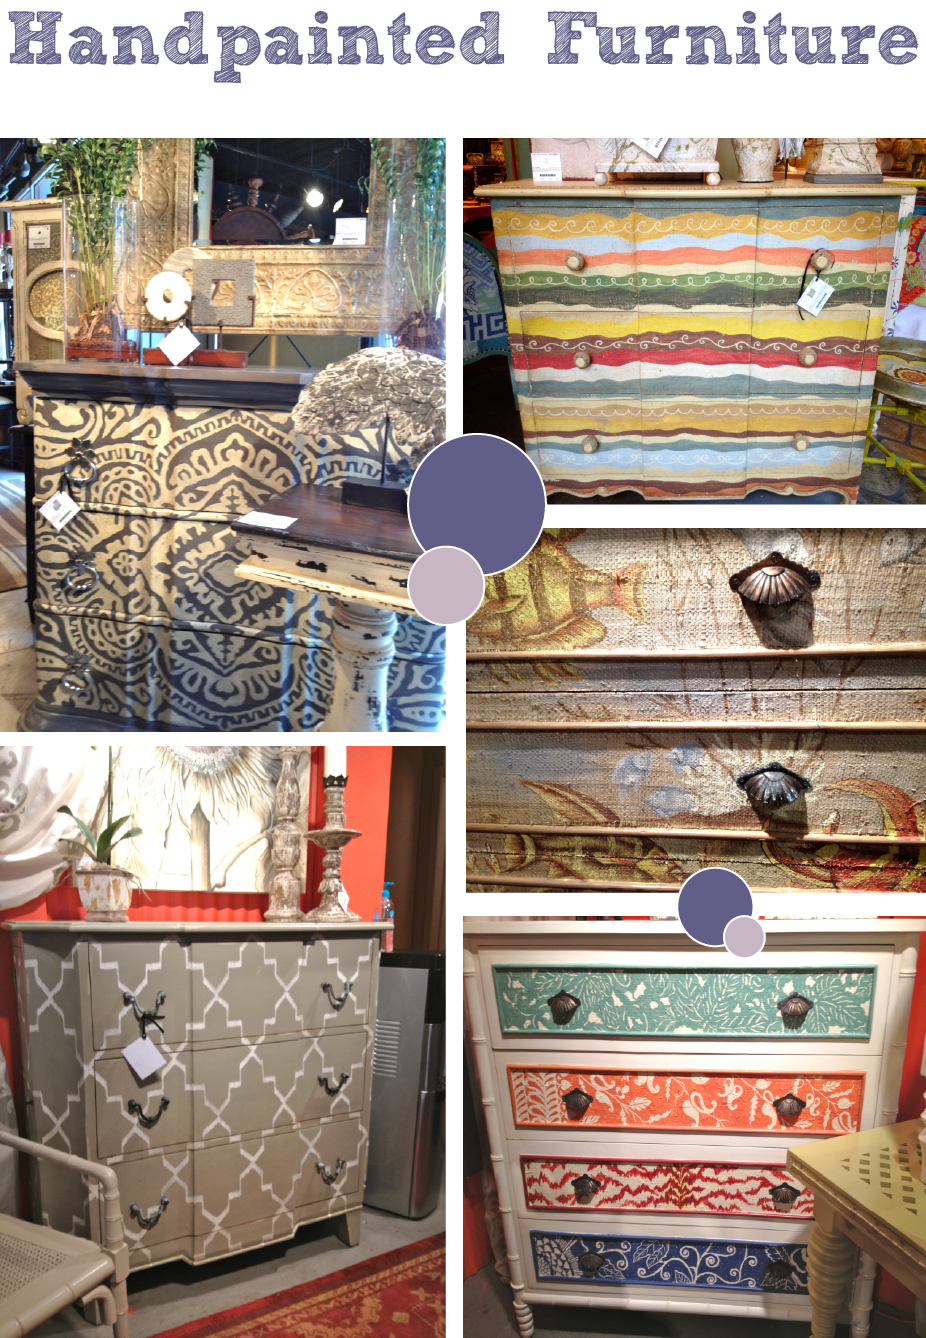 Finestra decorative hardware high point market - Hand painted furniture ideas ...